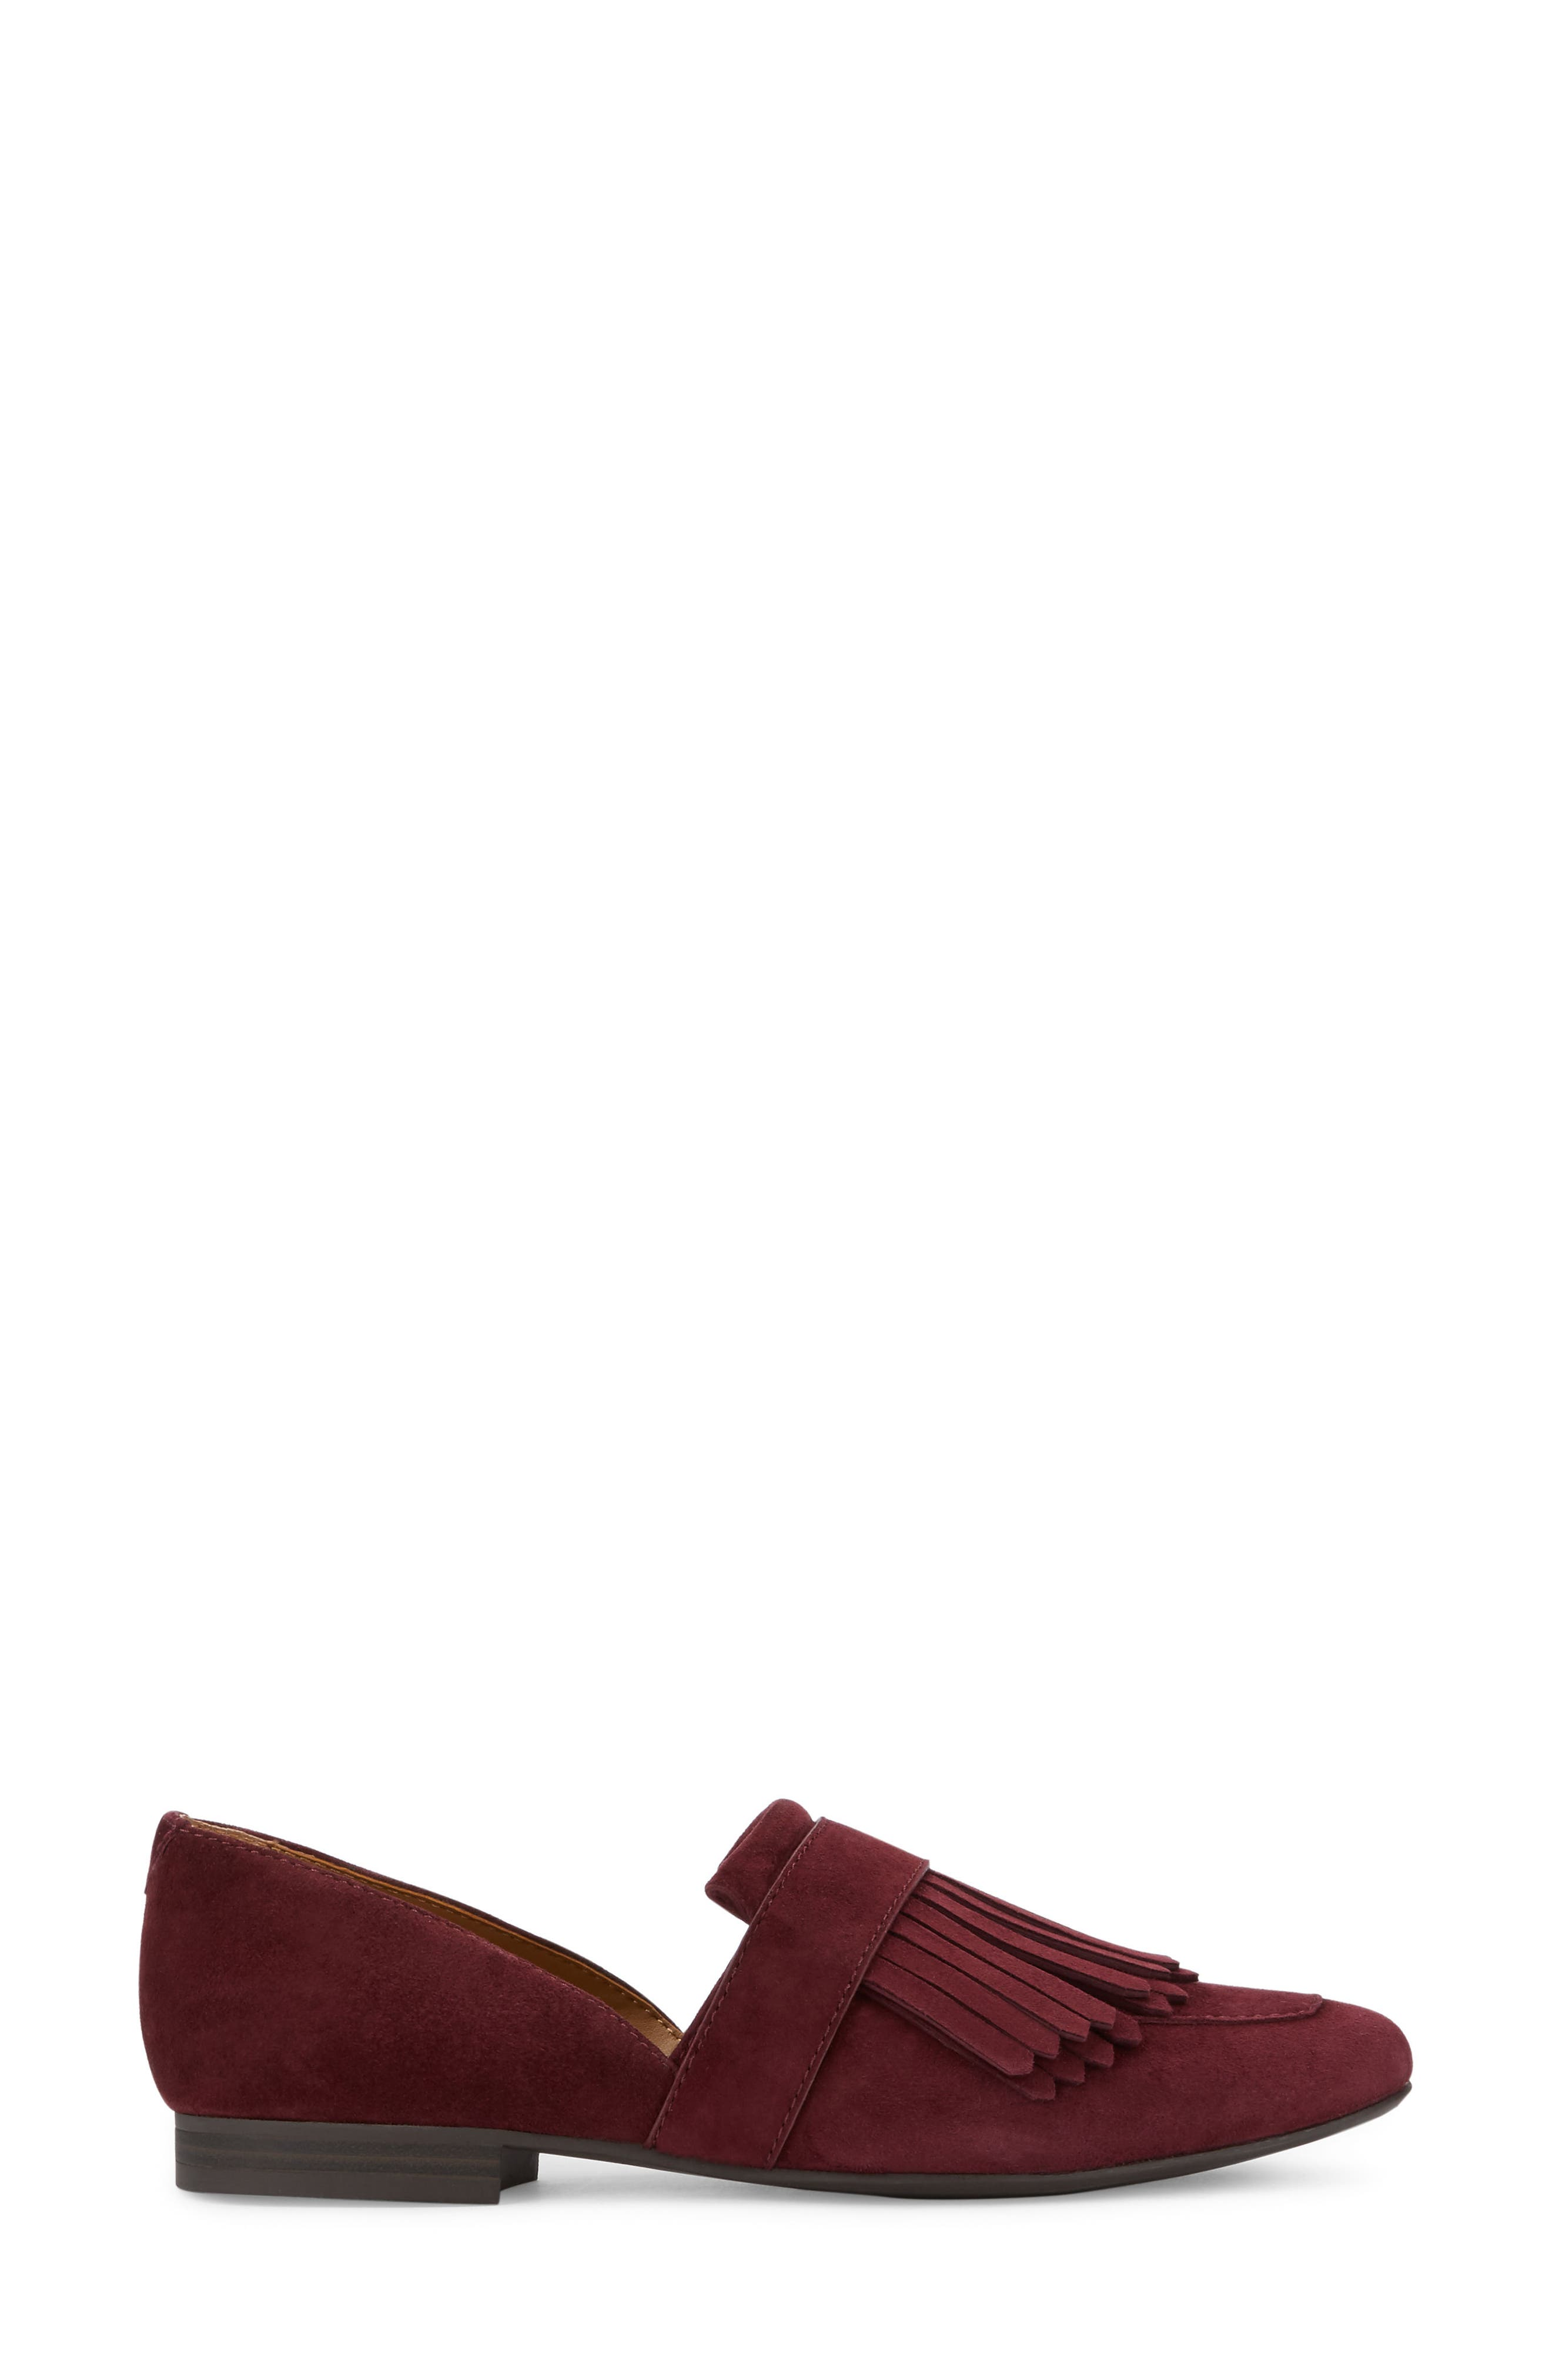 'Harlow' Kiltie Leather Loafer,                             Alternate thumbnail 2, color,                             Wine Suede